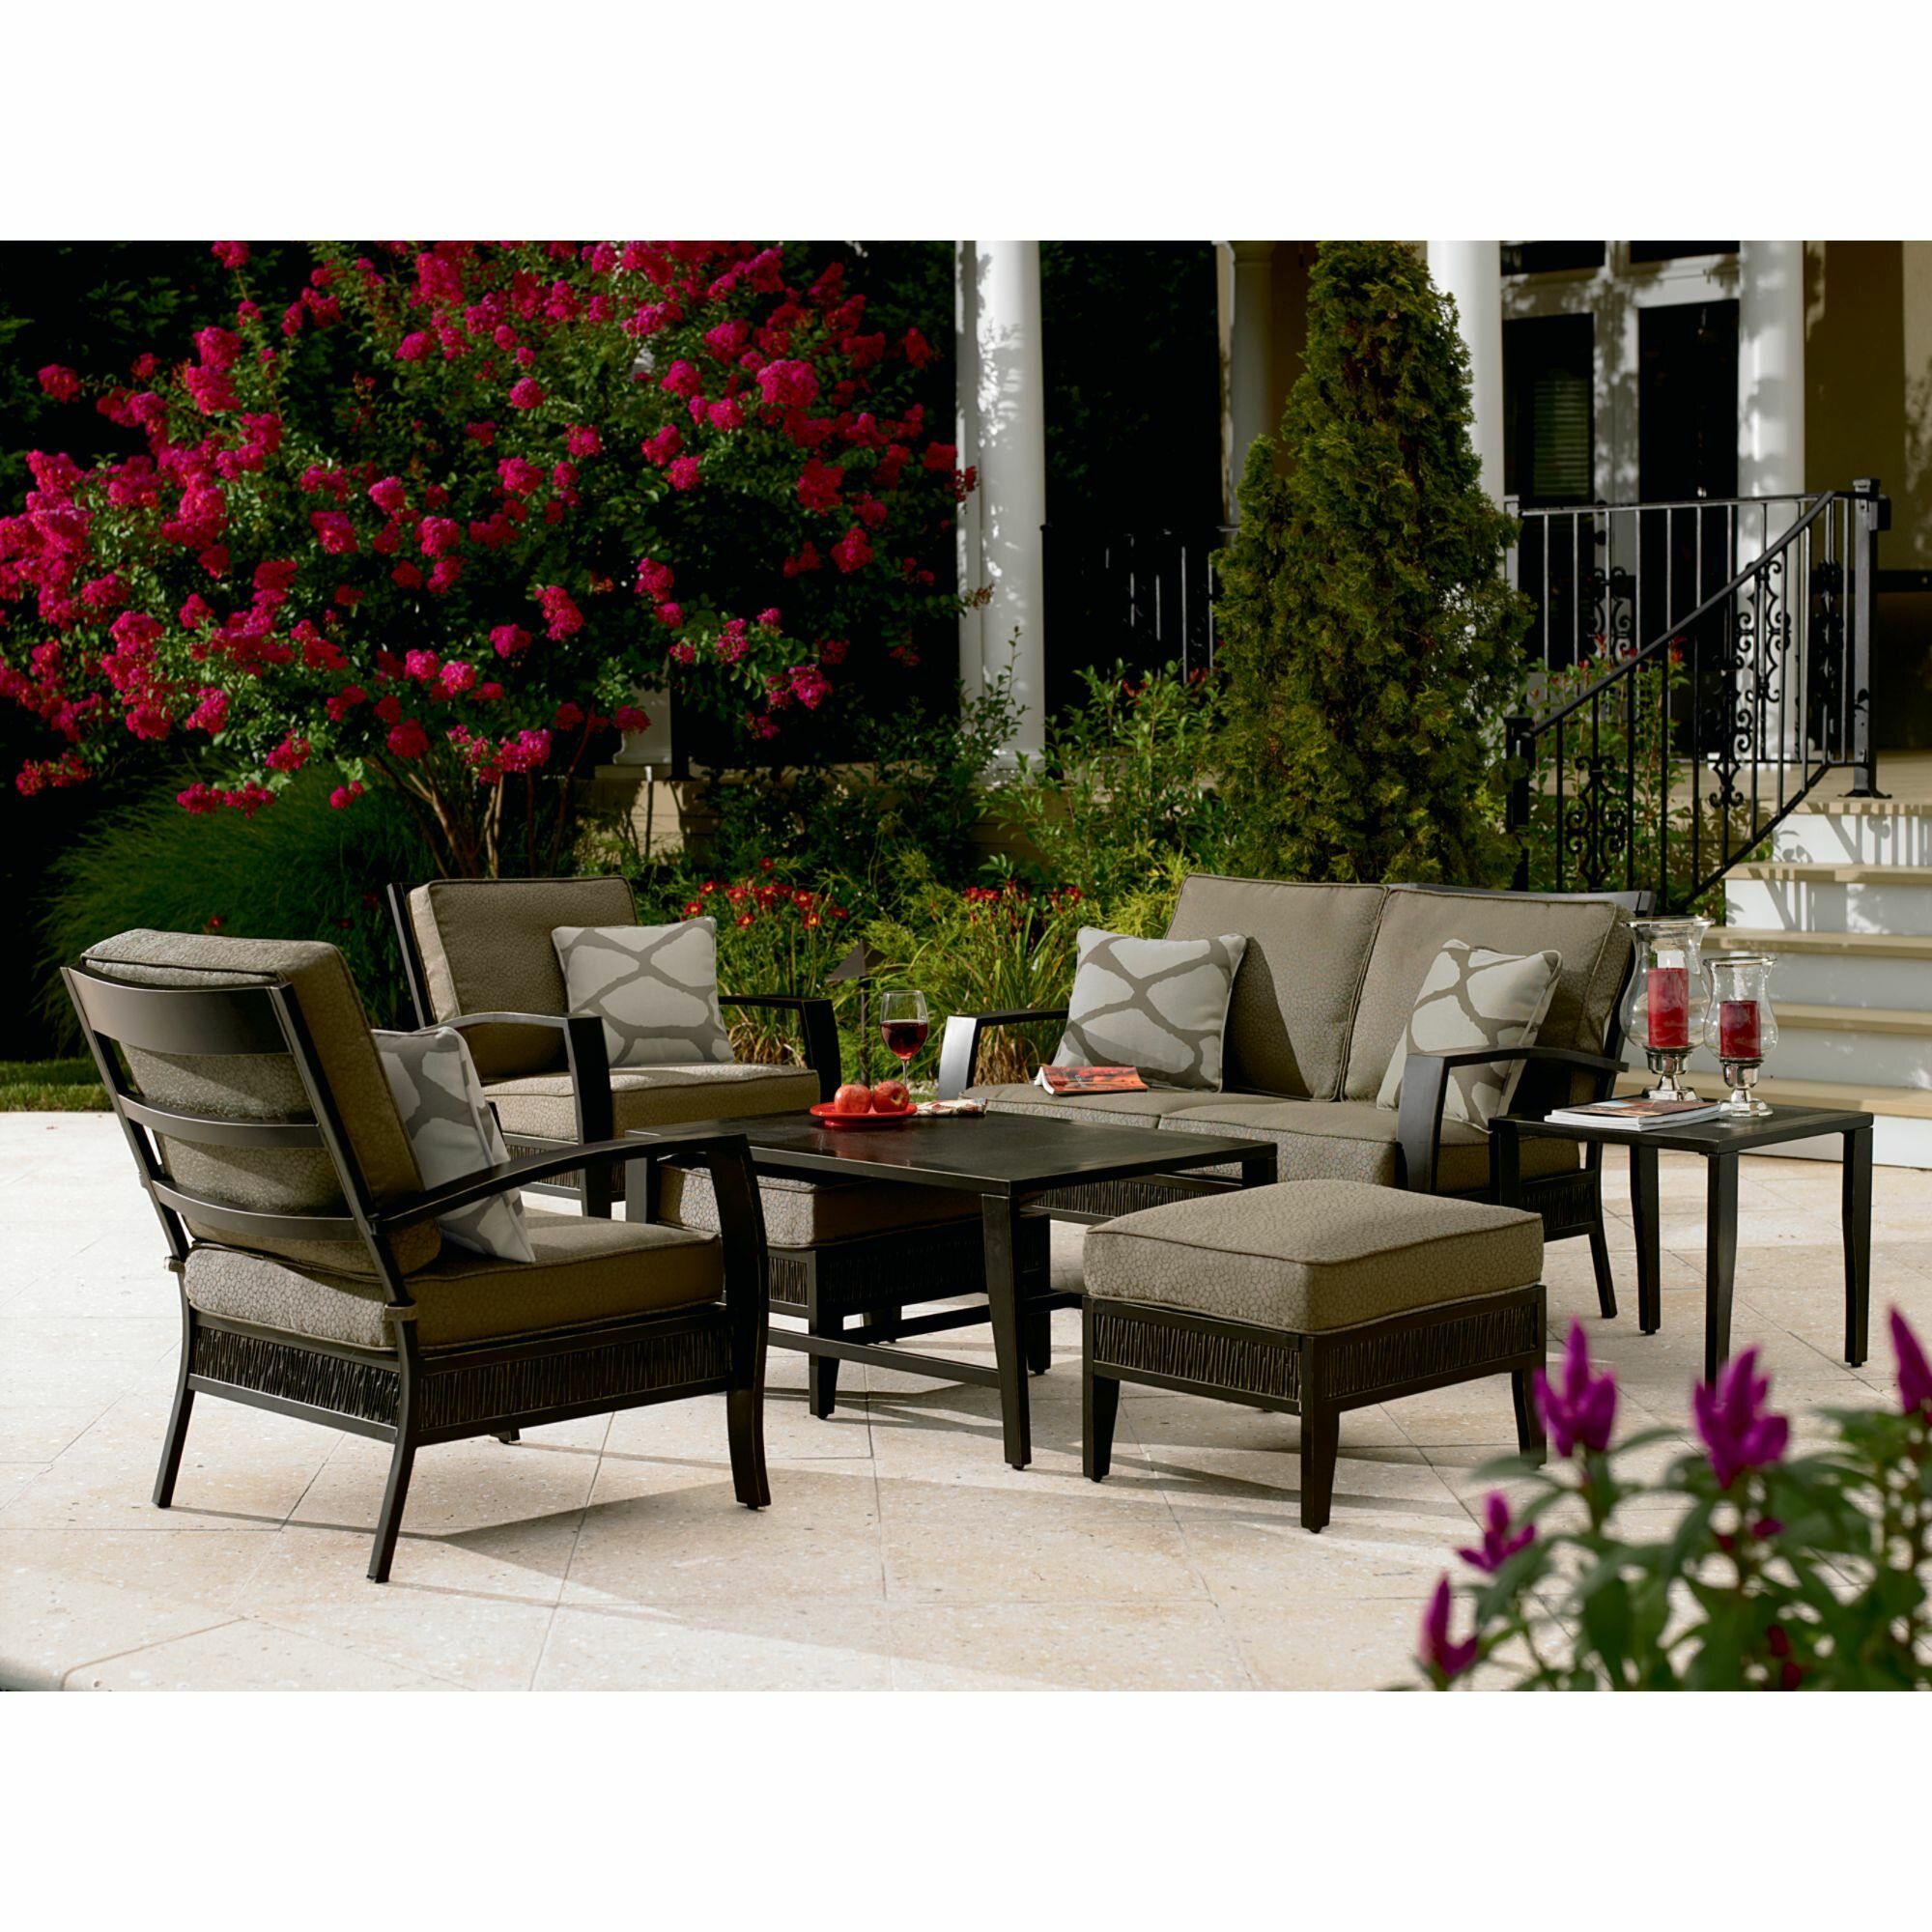 Patio Furniture Sears Outlet | Sears Outlet Outdoor Furniture | Sears Outlet Patio Furniture